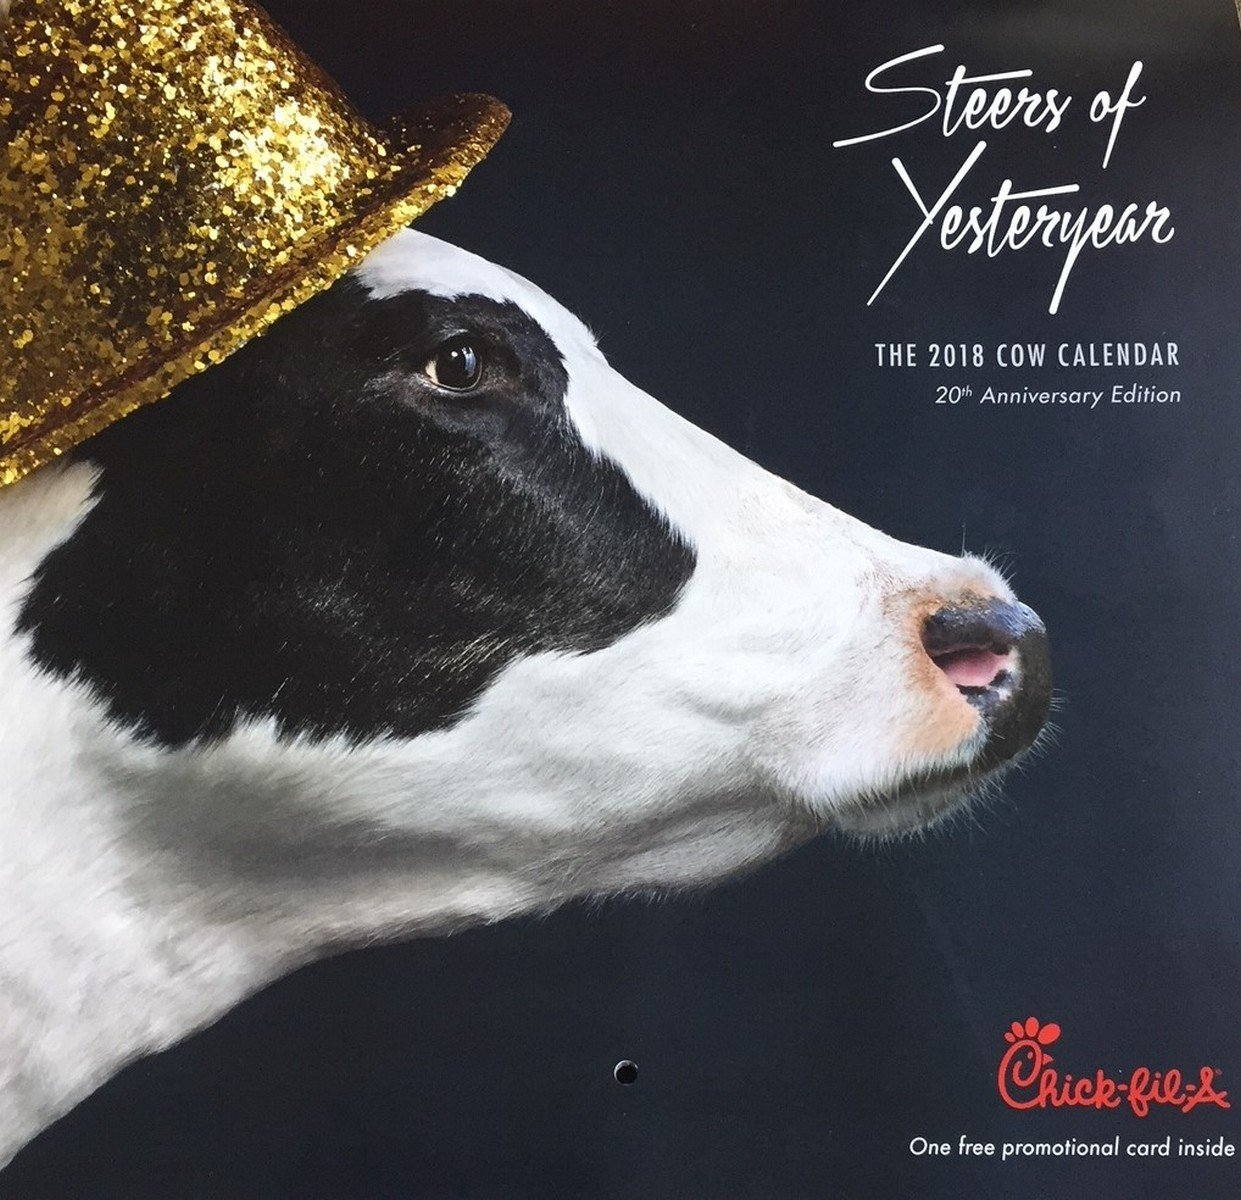 How To Get Discounted Chick-Fil-A In 2018 - A Few Weeks Remain! Chick Fil A Calendar 2019